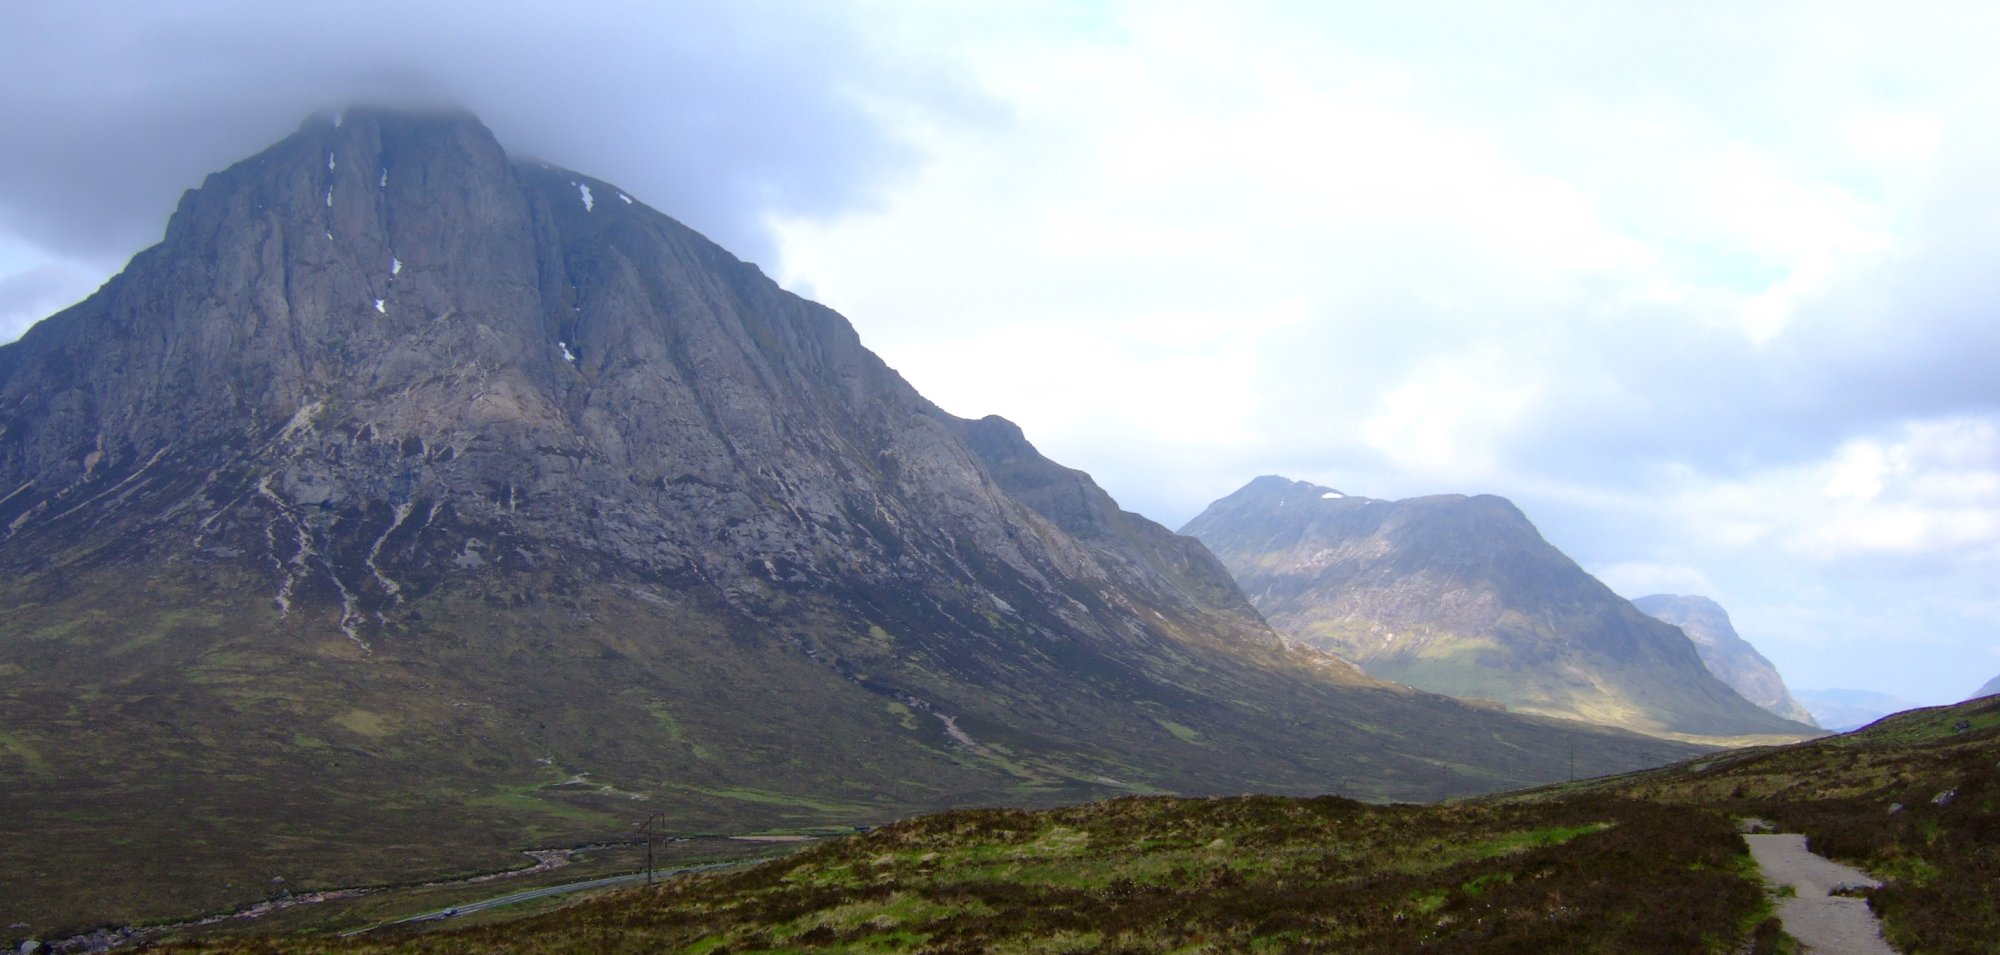 Buachaille Etive Mor with Buachaille Etive Beag beyond and the first of the Three Sisters, Beinn Fhada, in the distance